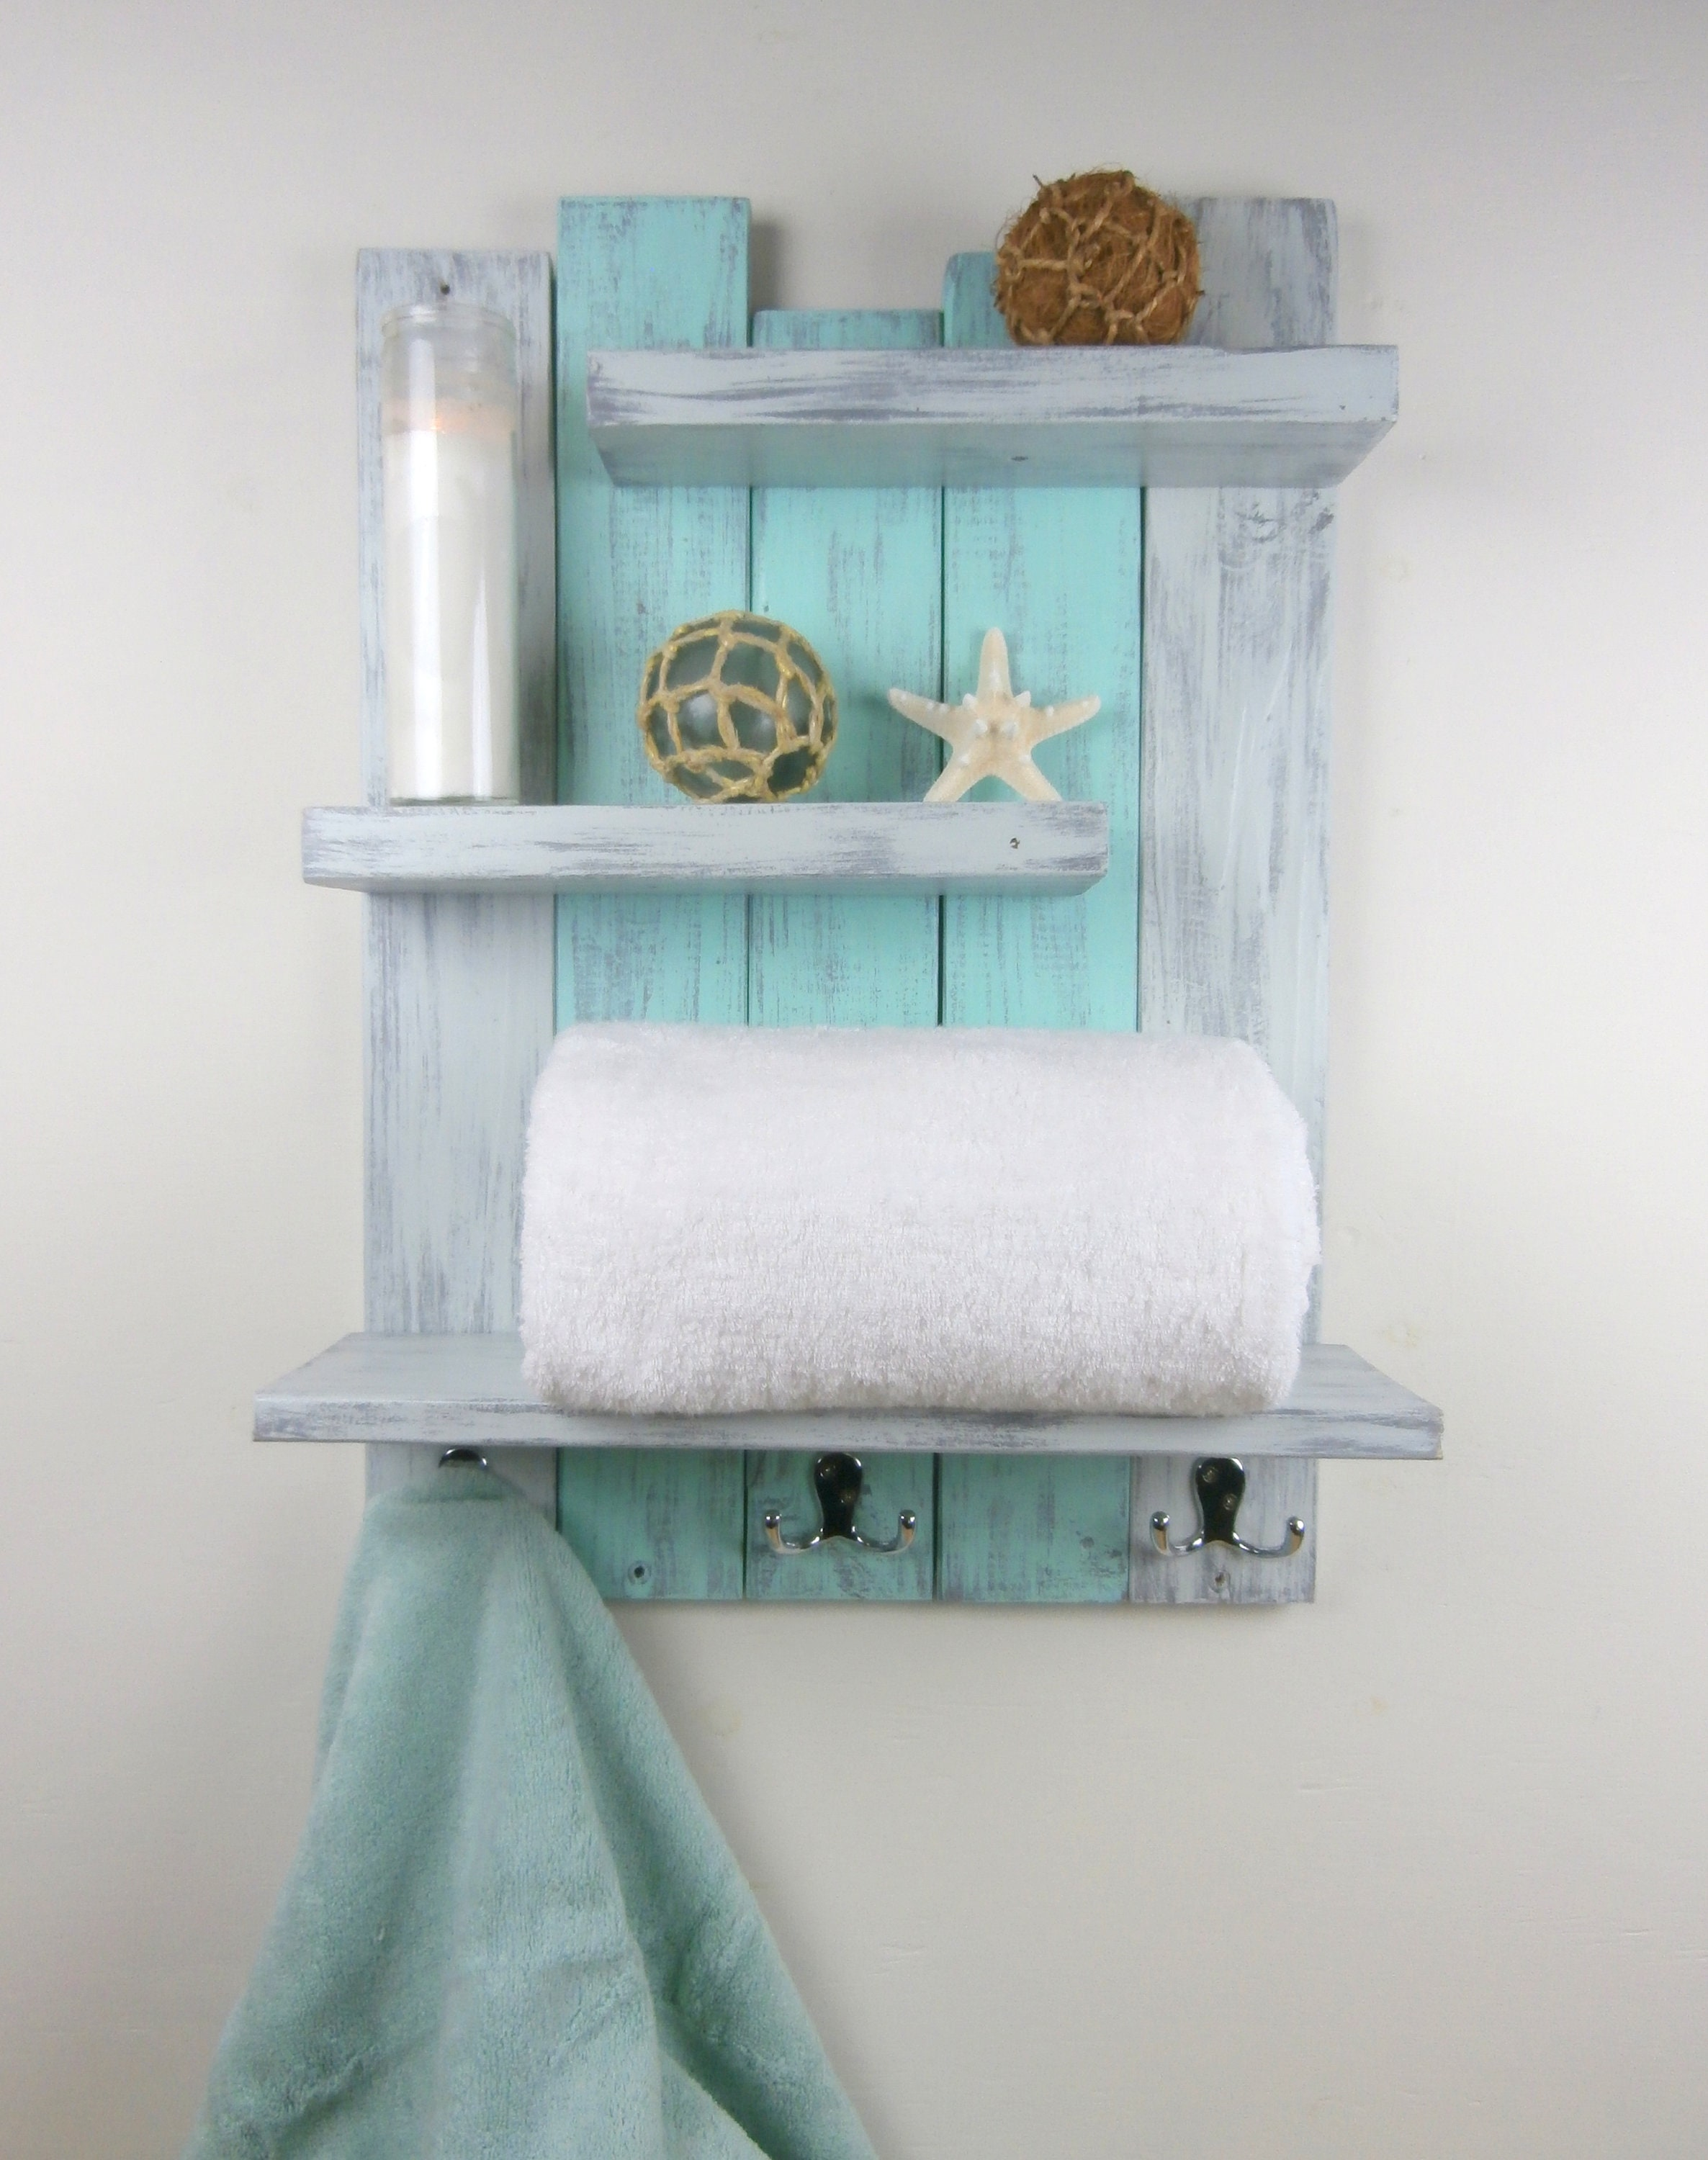 Shabby Teal Distressed Shelves Reclaimed Wood Bath Shelf | Etsy